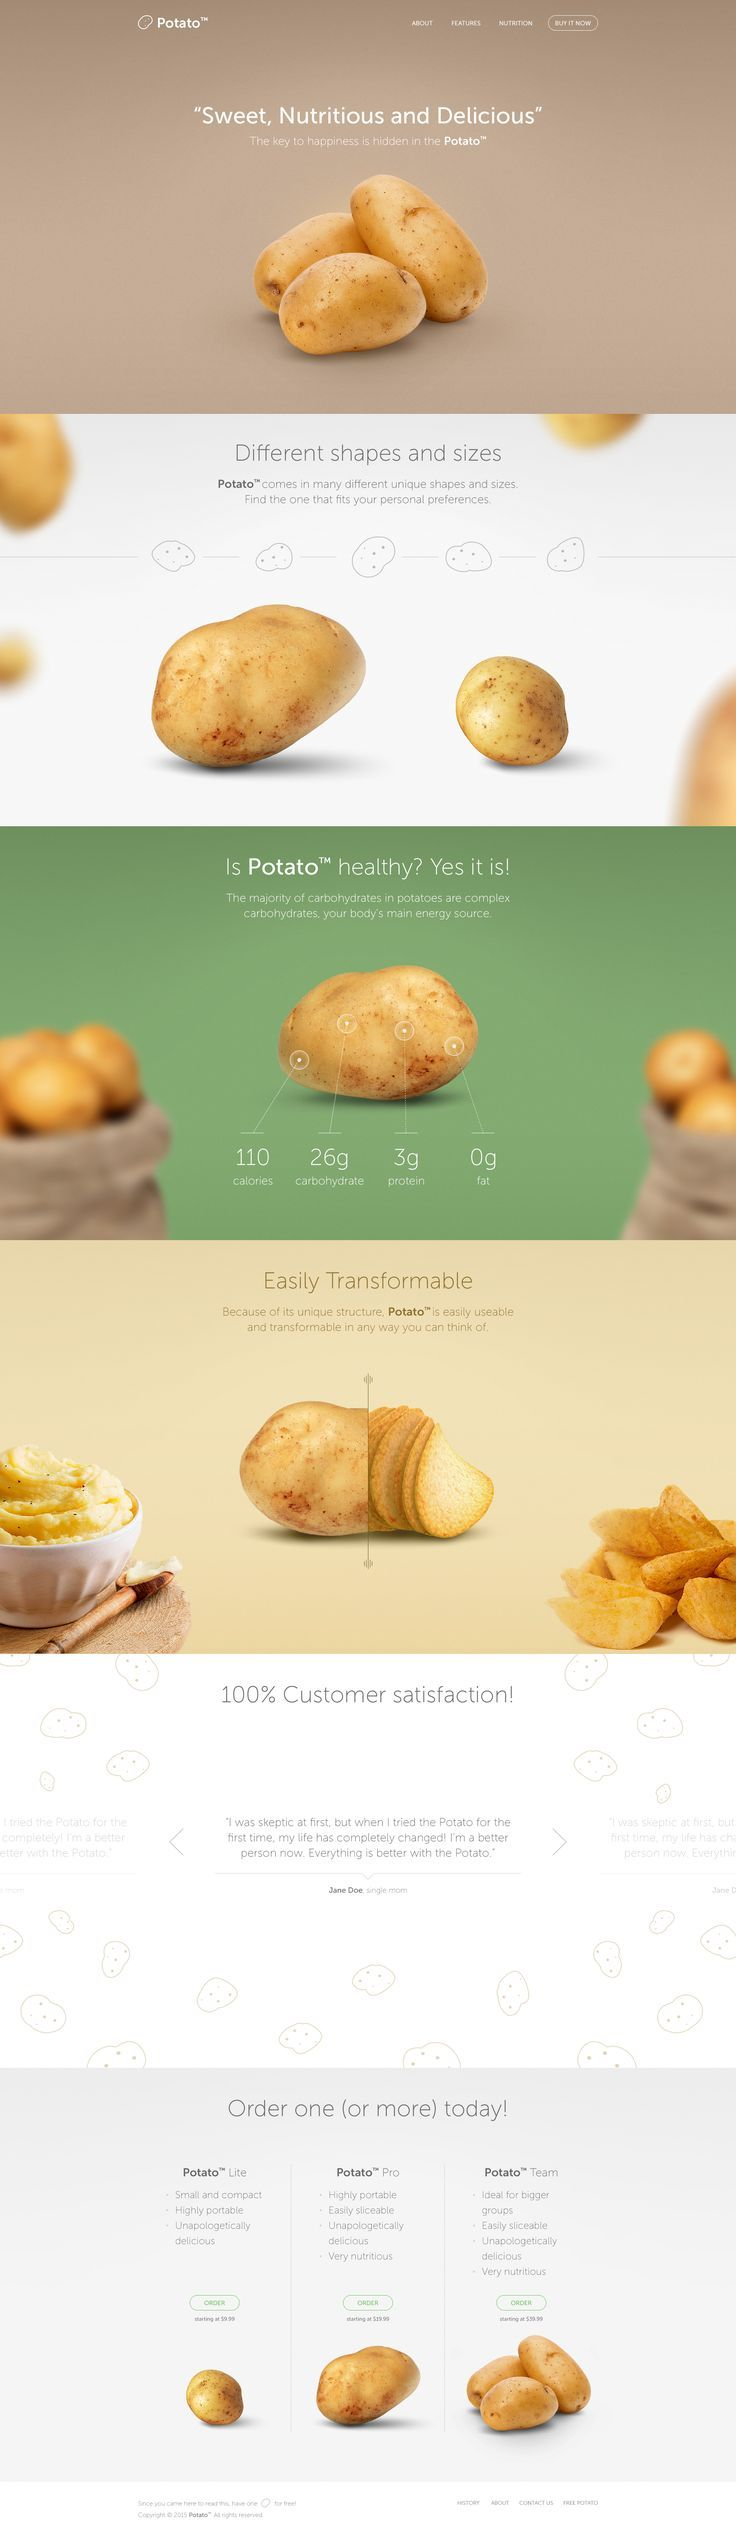 Potato. Finally, an official site for potato. #webdesign #design (View more at w...